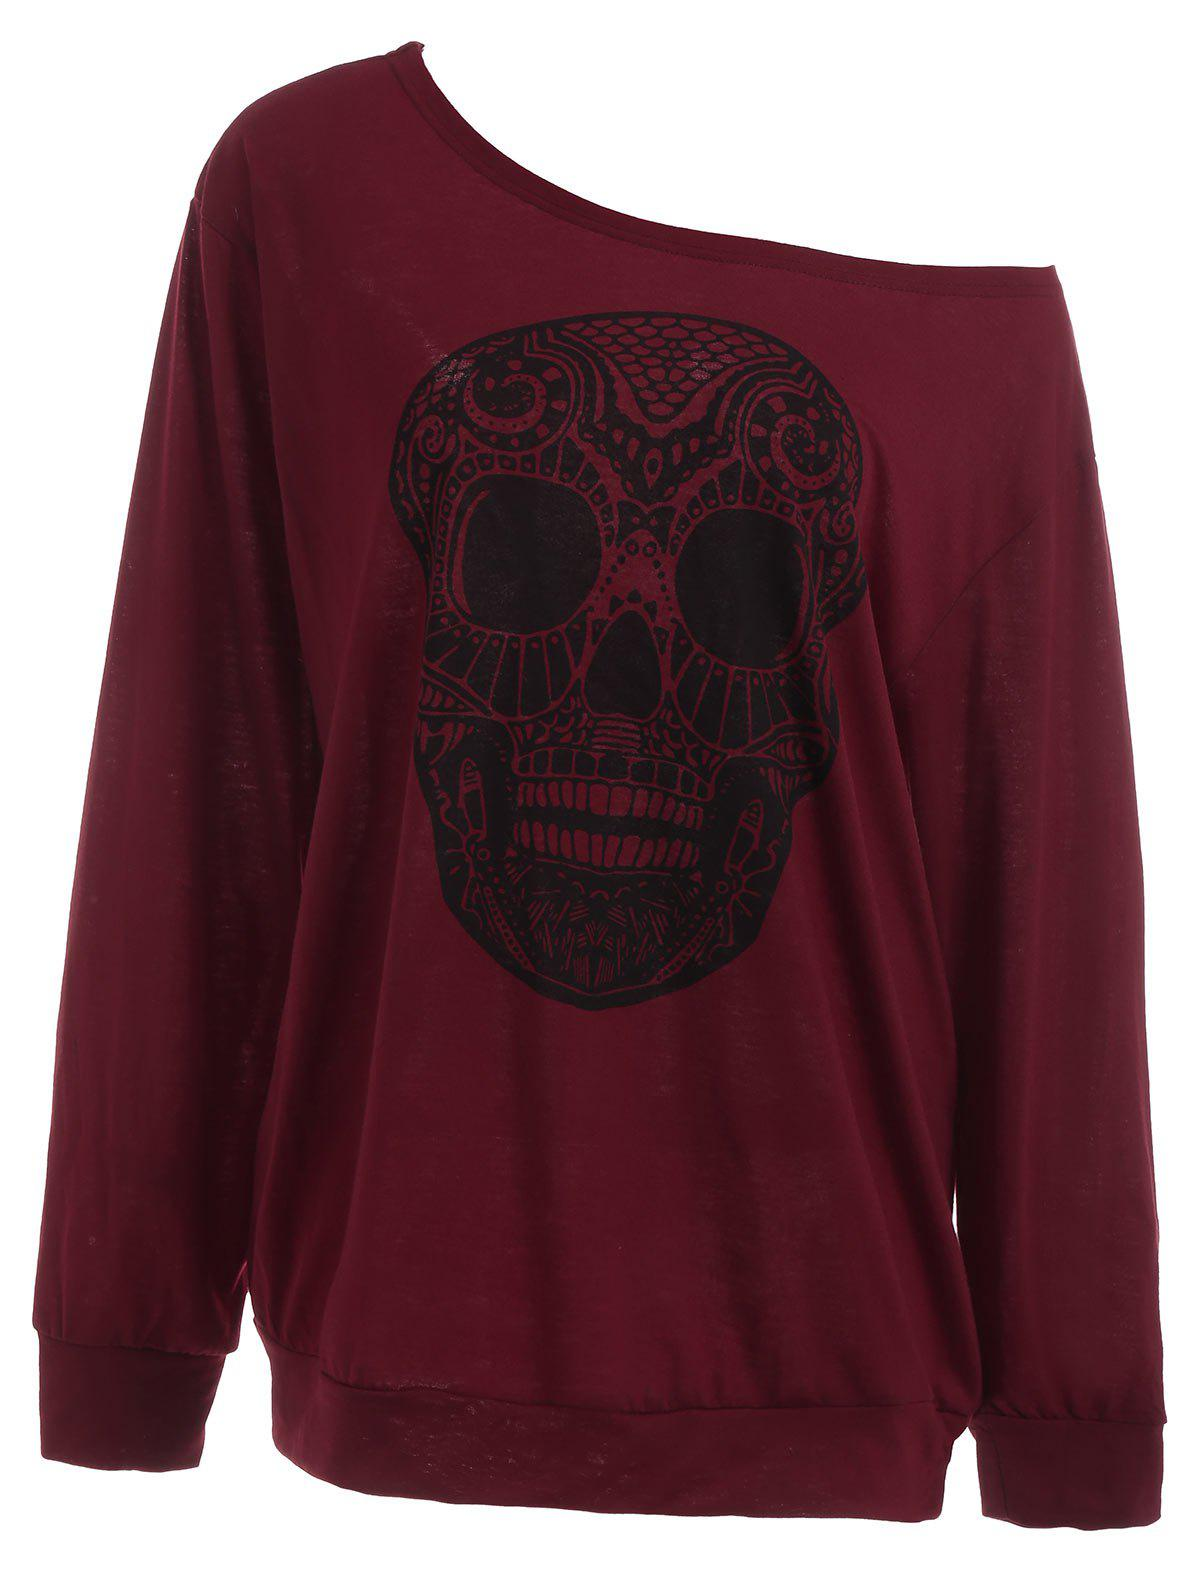 Plus Size Skull Skew Collar SweatshirtWOMEN<br><br>Size: 3XL; Color: WINE RED; Material: Polyester,Spandex; Shirt Length: Long; Sleeve Length: Full; Style: Casual; Pattern Style: Skulls; Season: Fall,Spring; Weight: 0.3700kg; Package Contents: 1 x Sweatshirt;